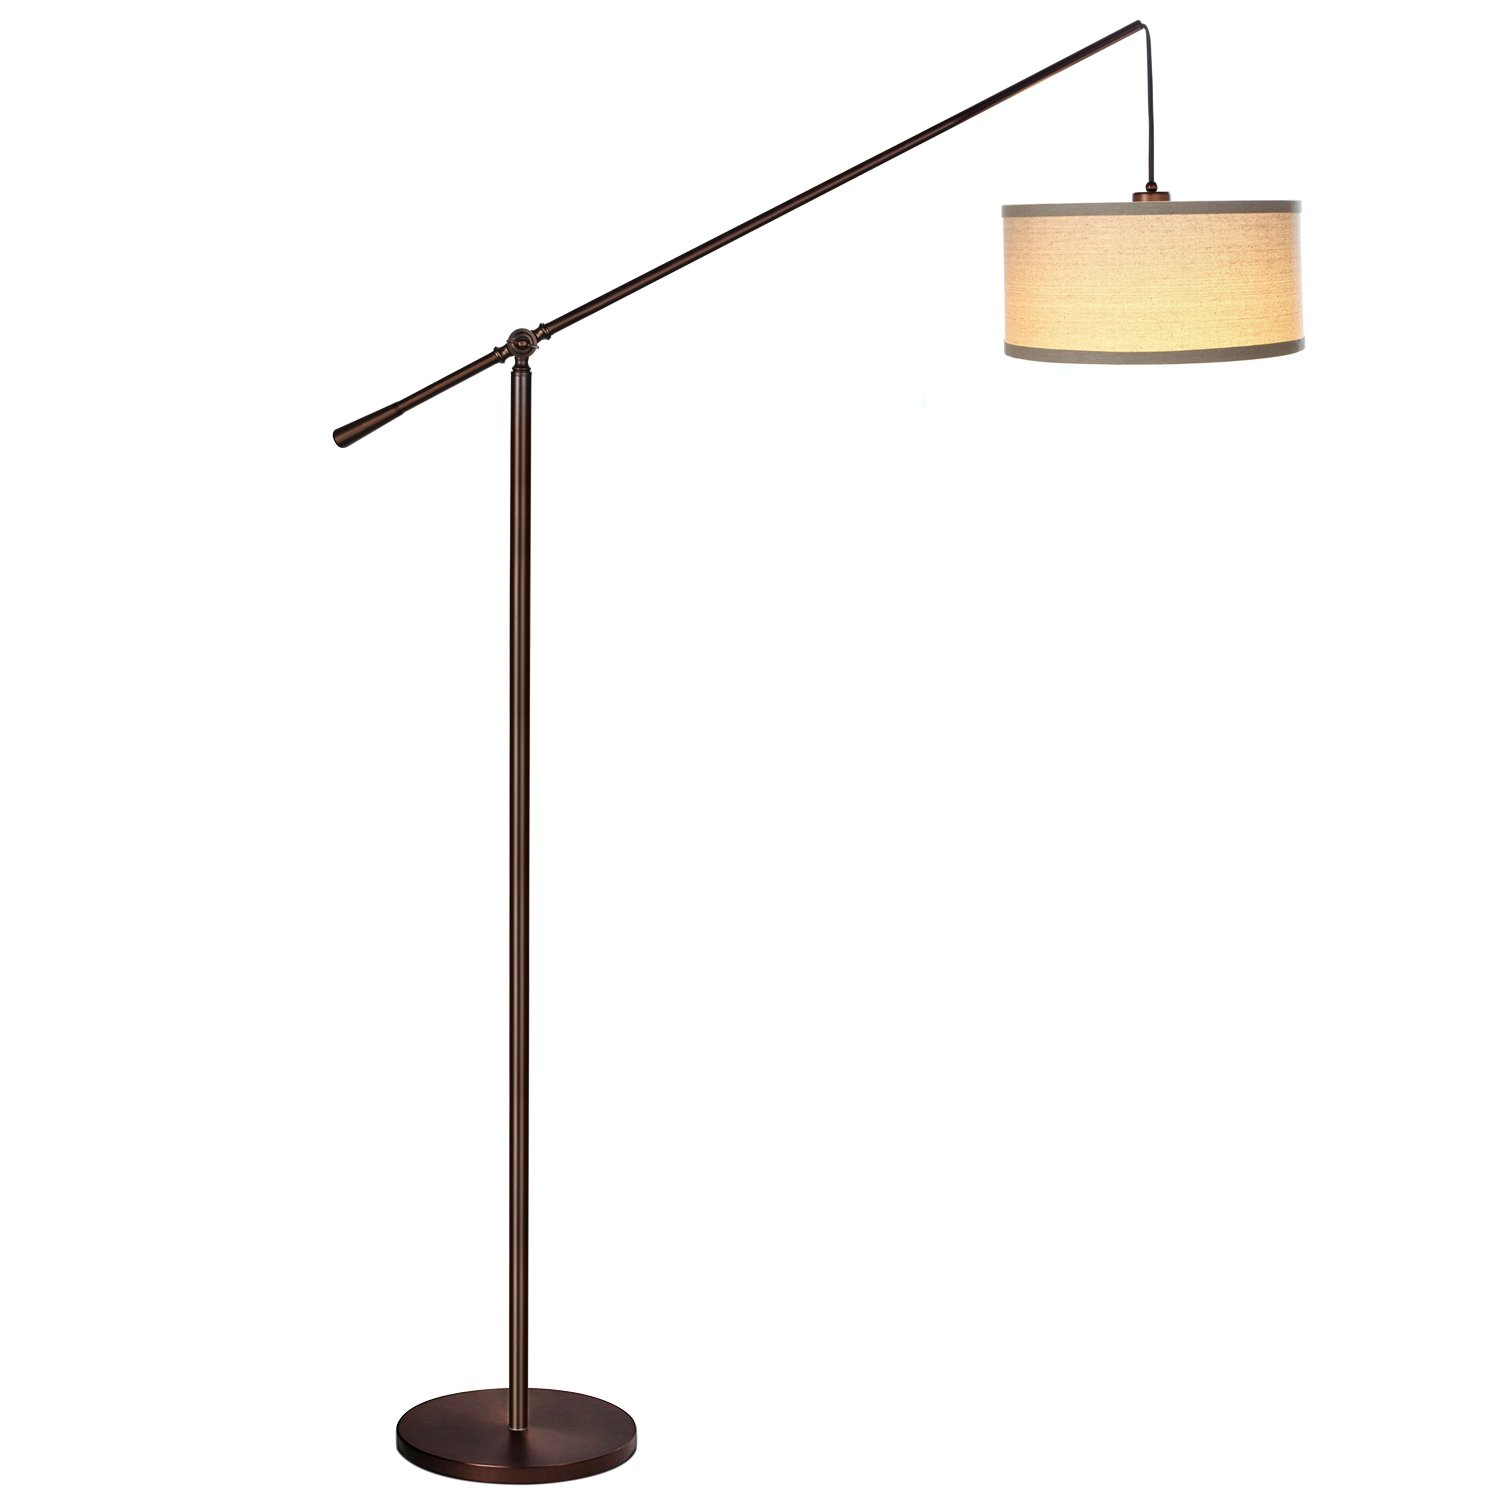 amazoncom brightech hudson pendant floor lamp – classic elevated cranearc floor lamp with linentextured hanging lamp shade tall industrial . amazoncom brightech hudson pendant floor lamp – classic elevated